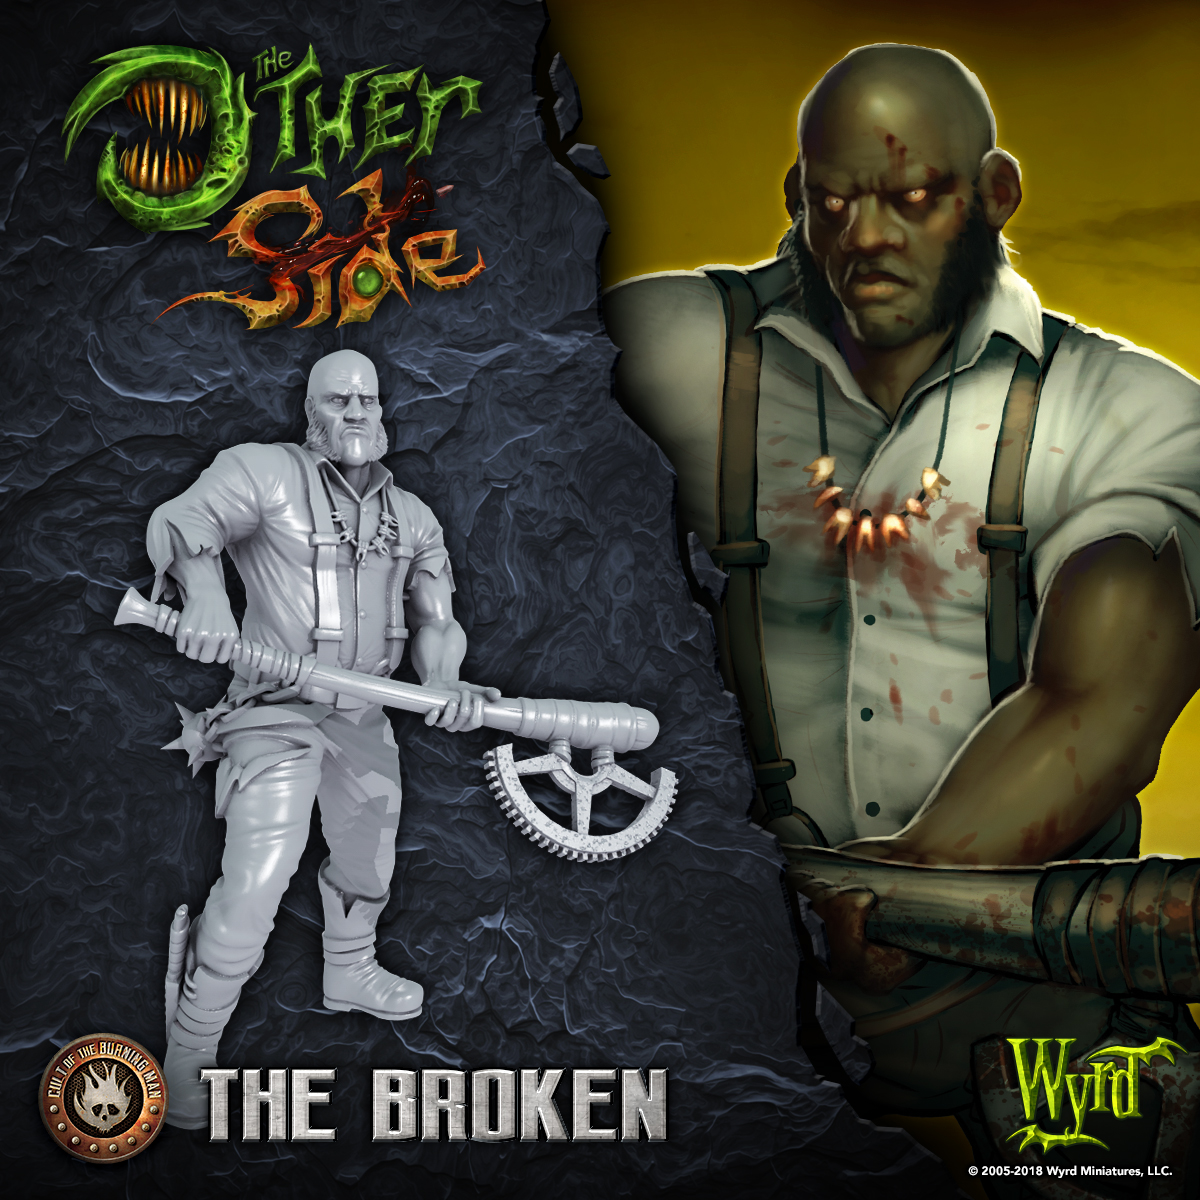 Wyrd Previews The Broken For The Other Side - Tabletop